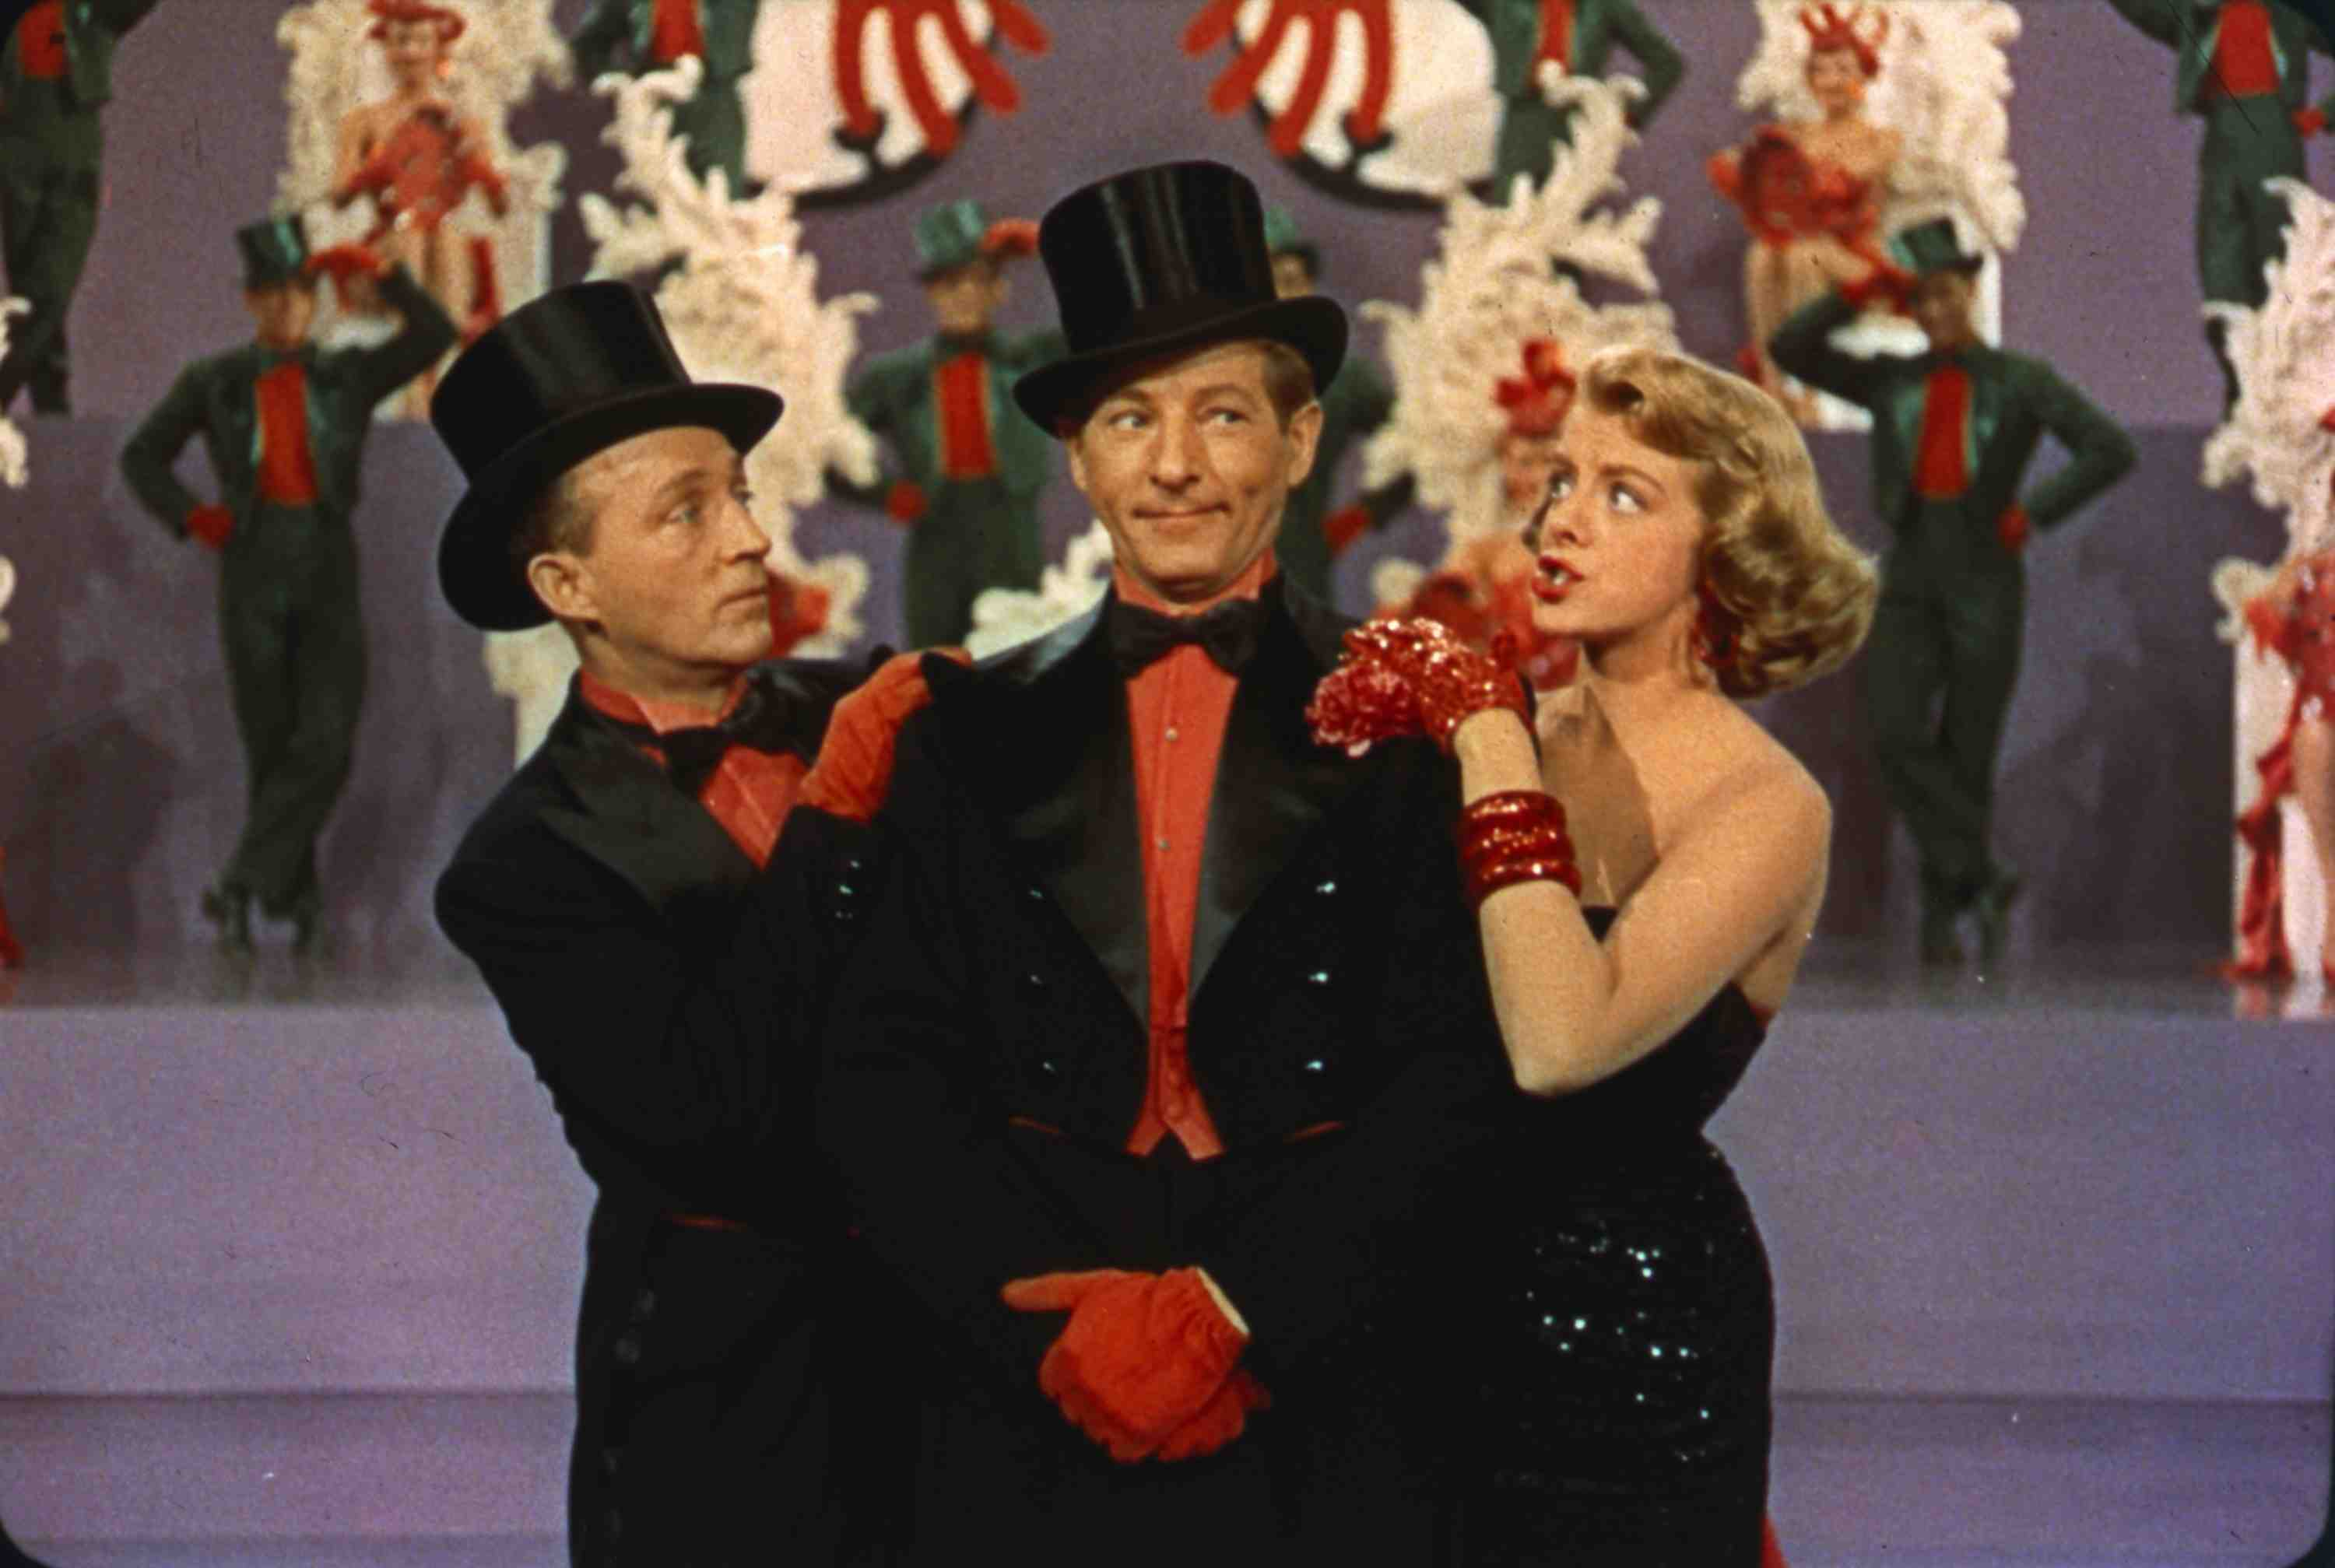 ksl.com - 5 movies streaming on Netflix to watch for Christmas